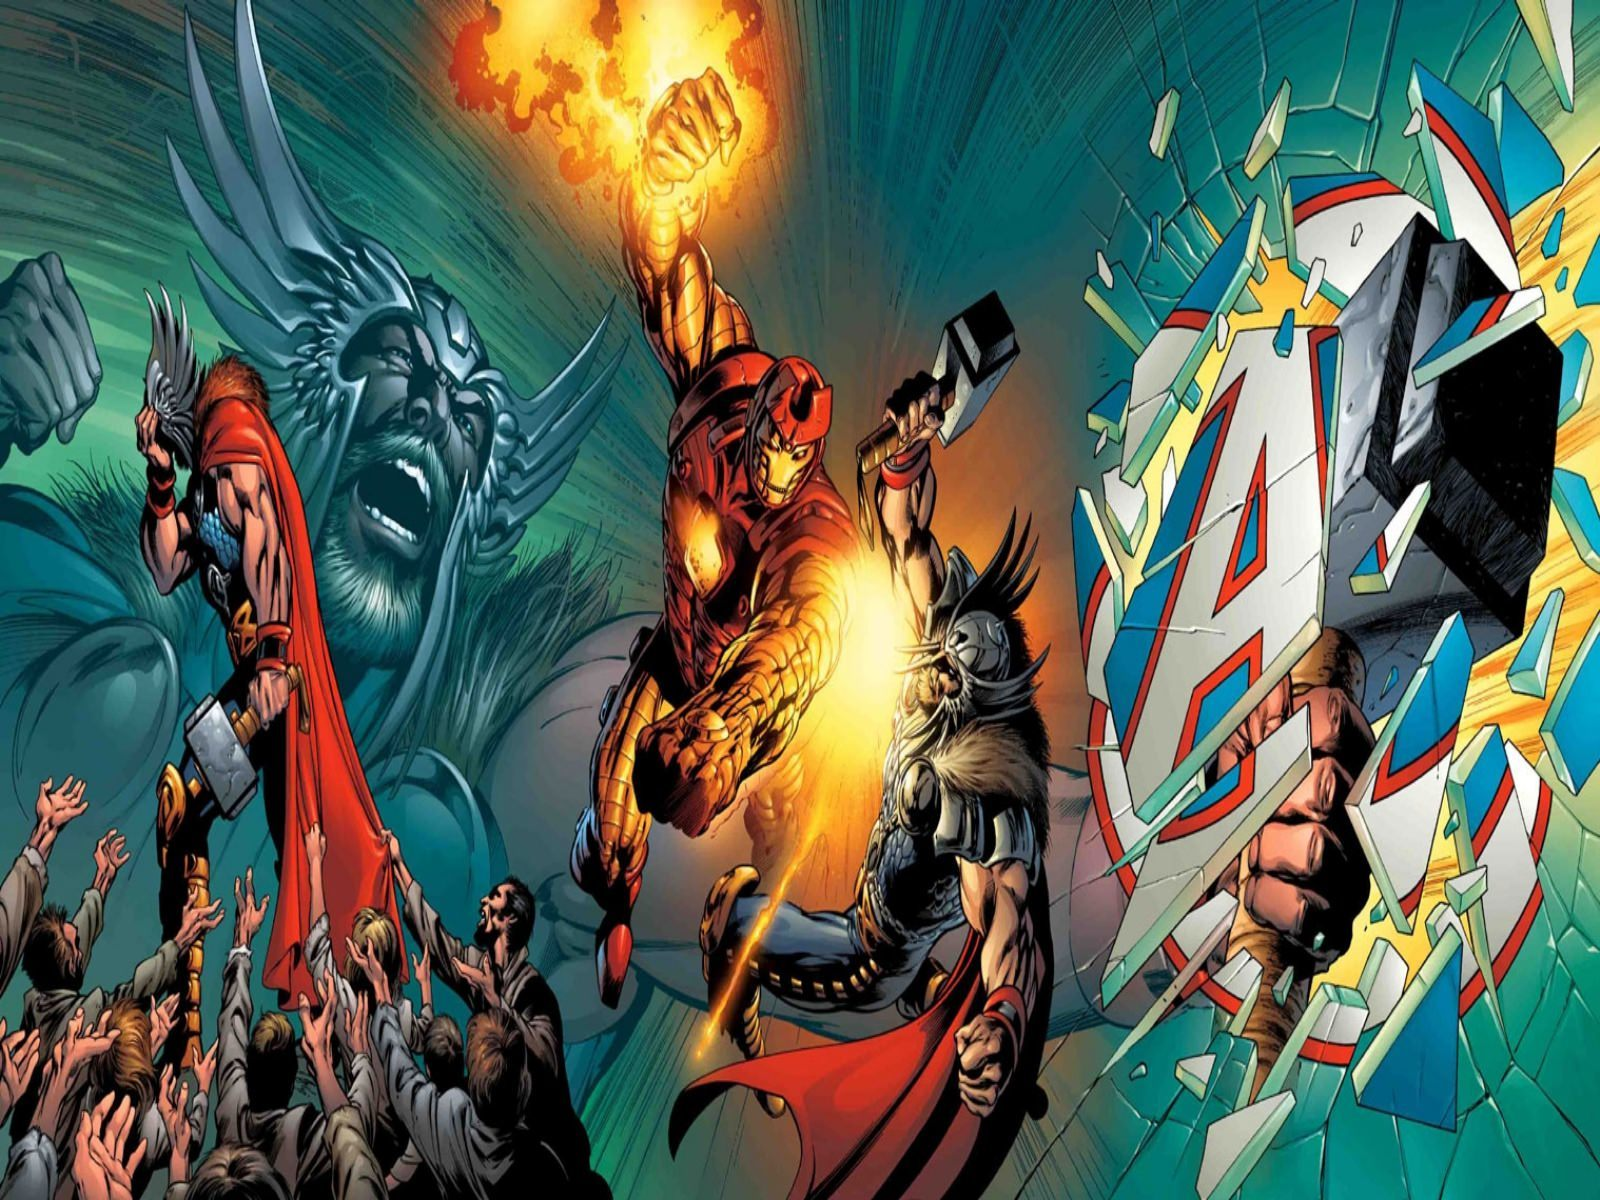 Iron Man Vs Thor Wallpaper 1600x1200.